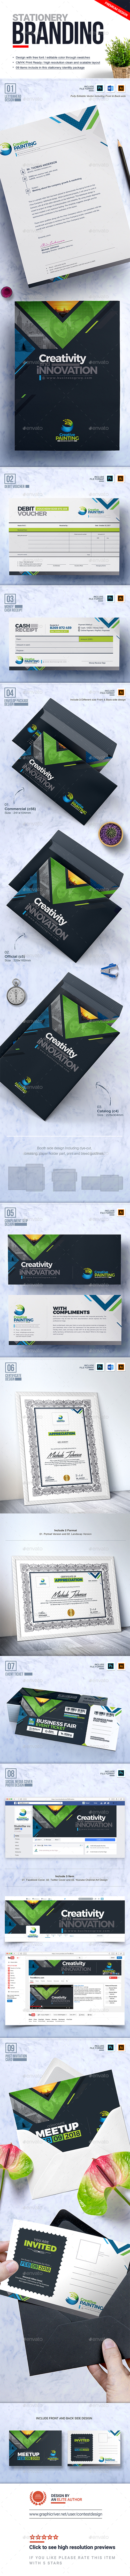 GraphicRiver Stationery Branding Identity Pack Vol 01 20962254